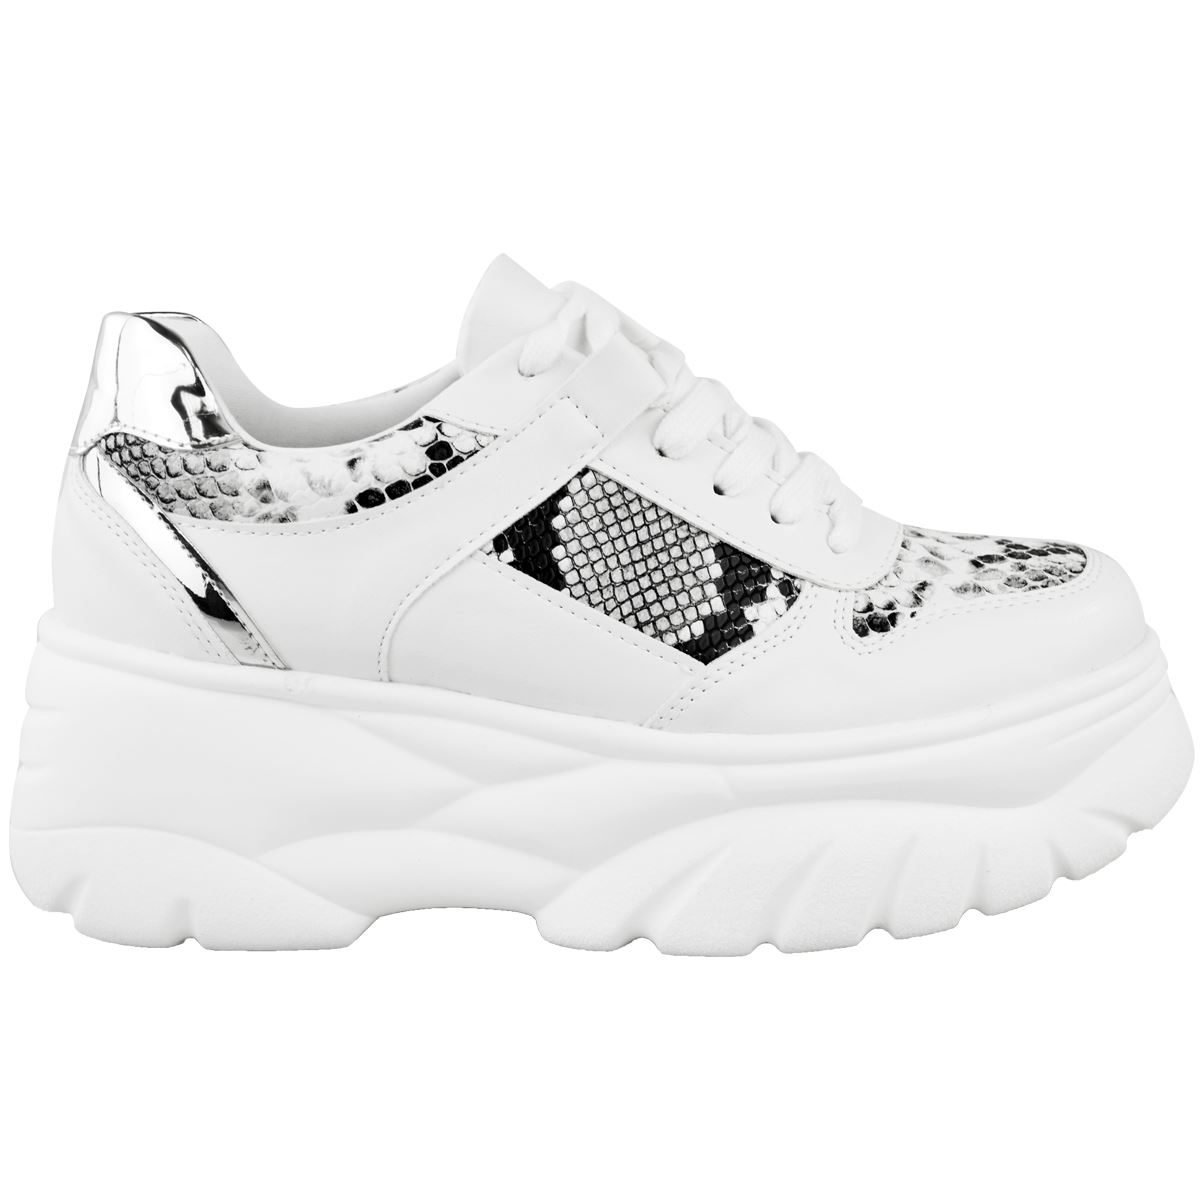 Womens Ladies Chunky High Platform Trainers Sneakers Retro Shoes Rock Punk Goth